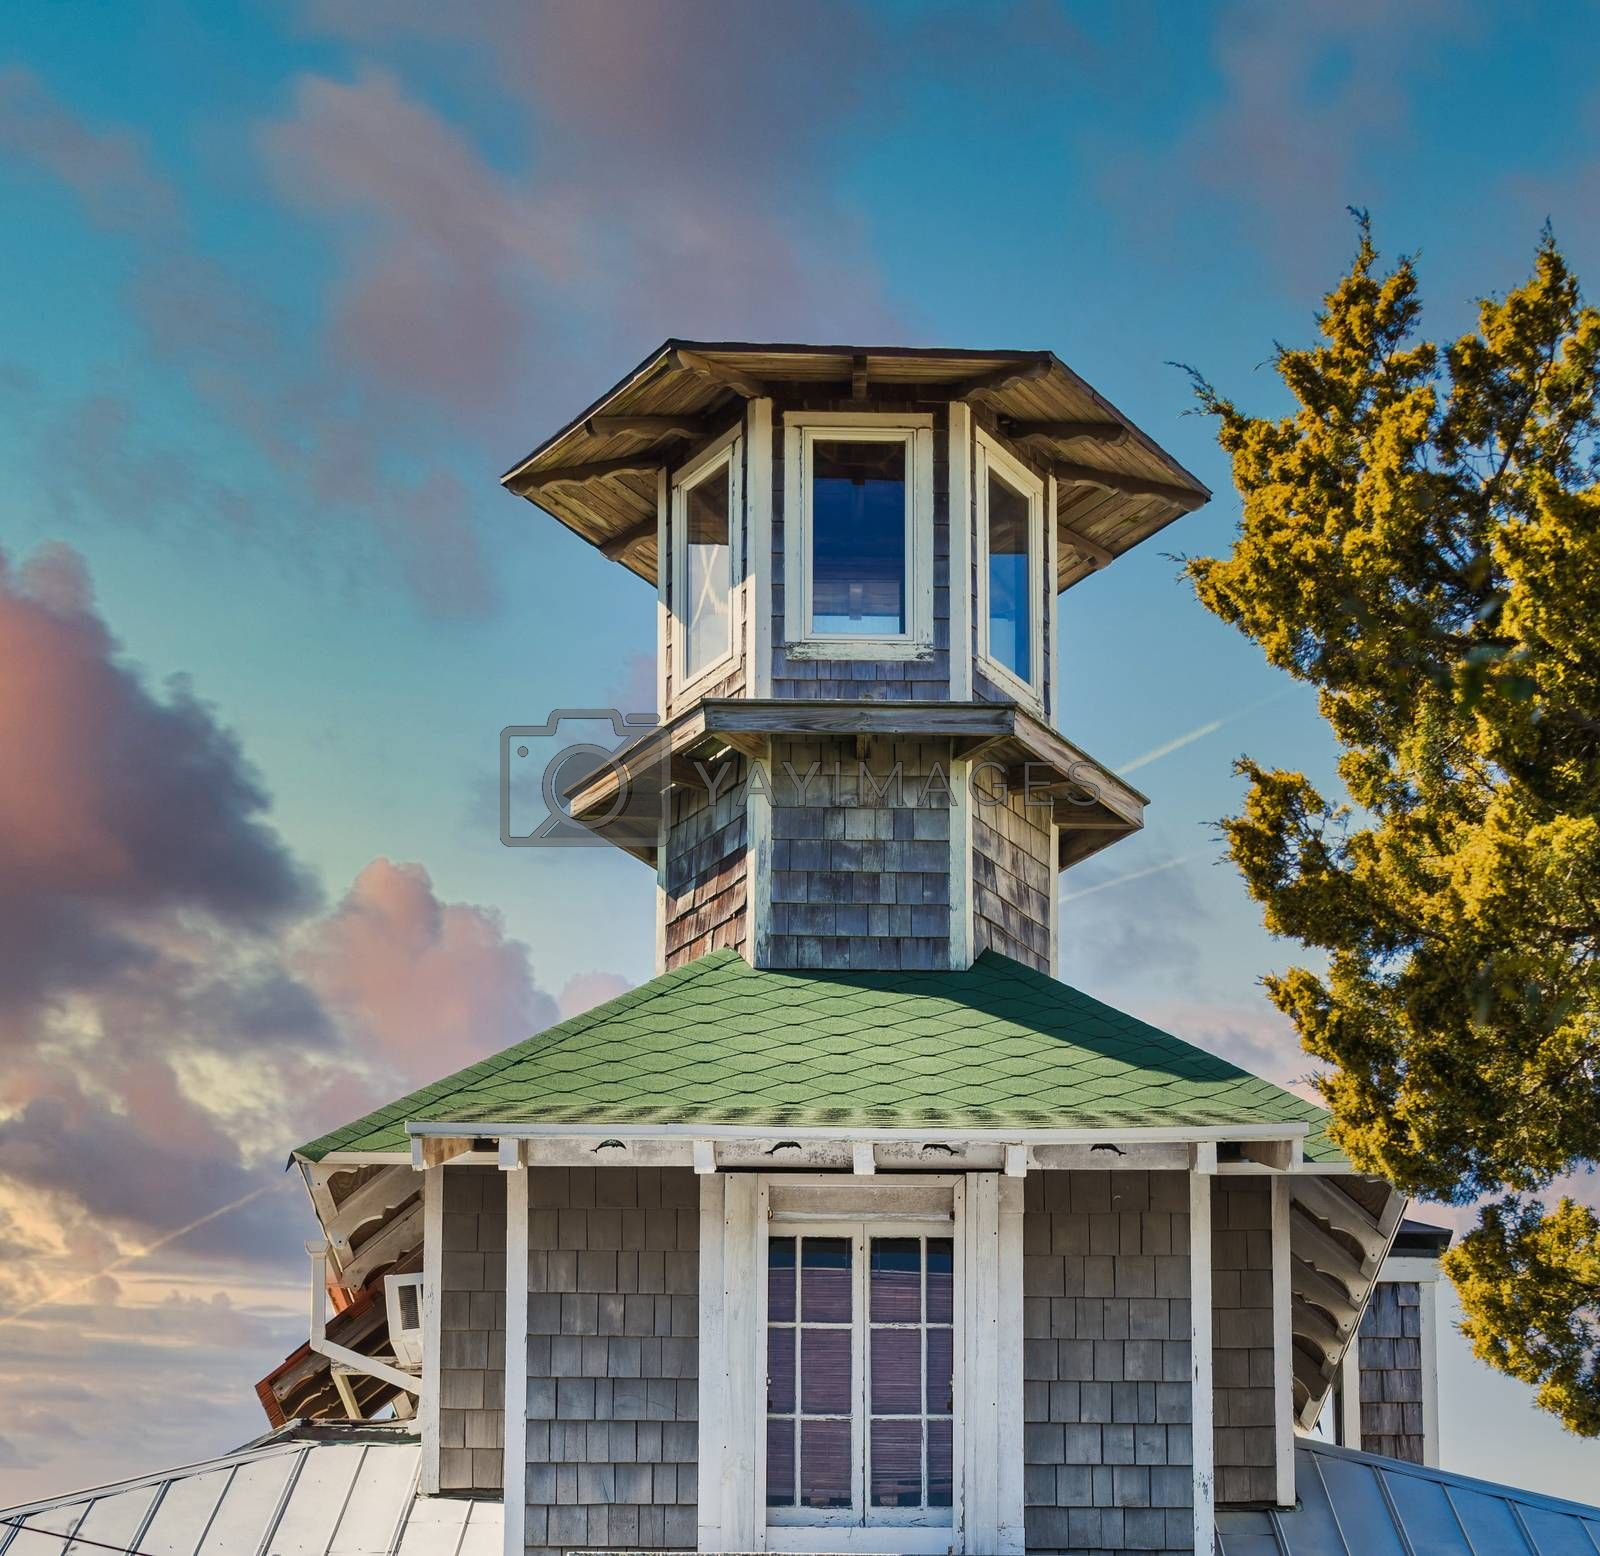 Cupola of Wood with Green Shingles by dbvirago